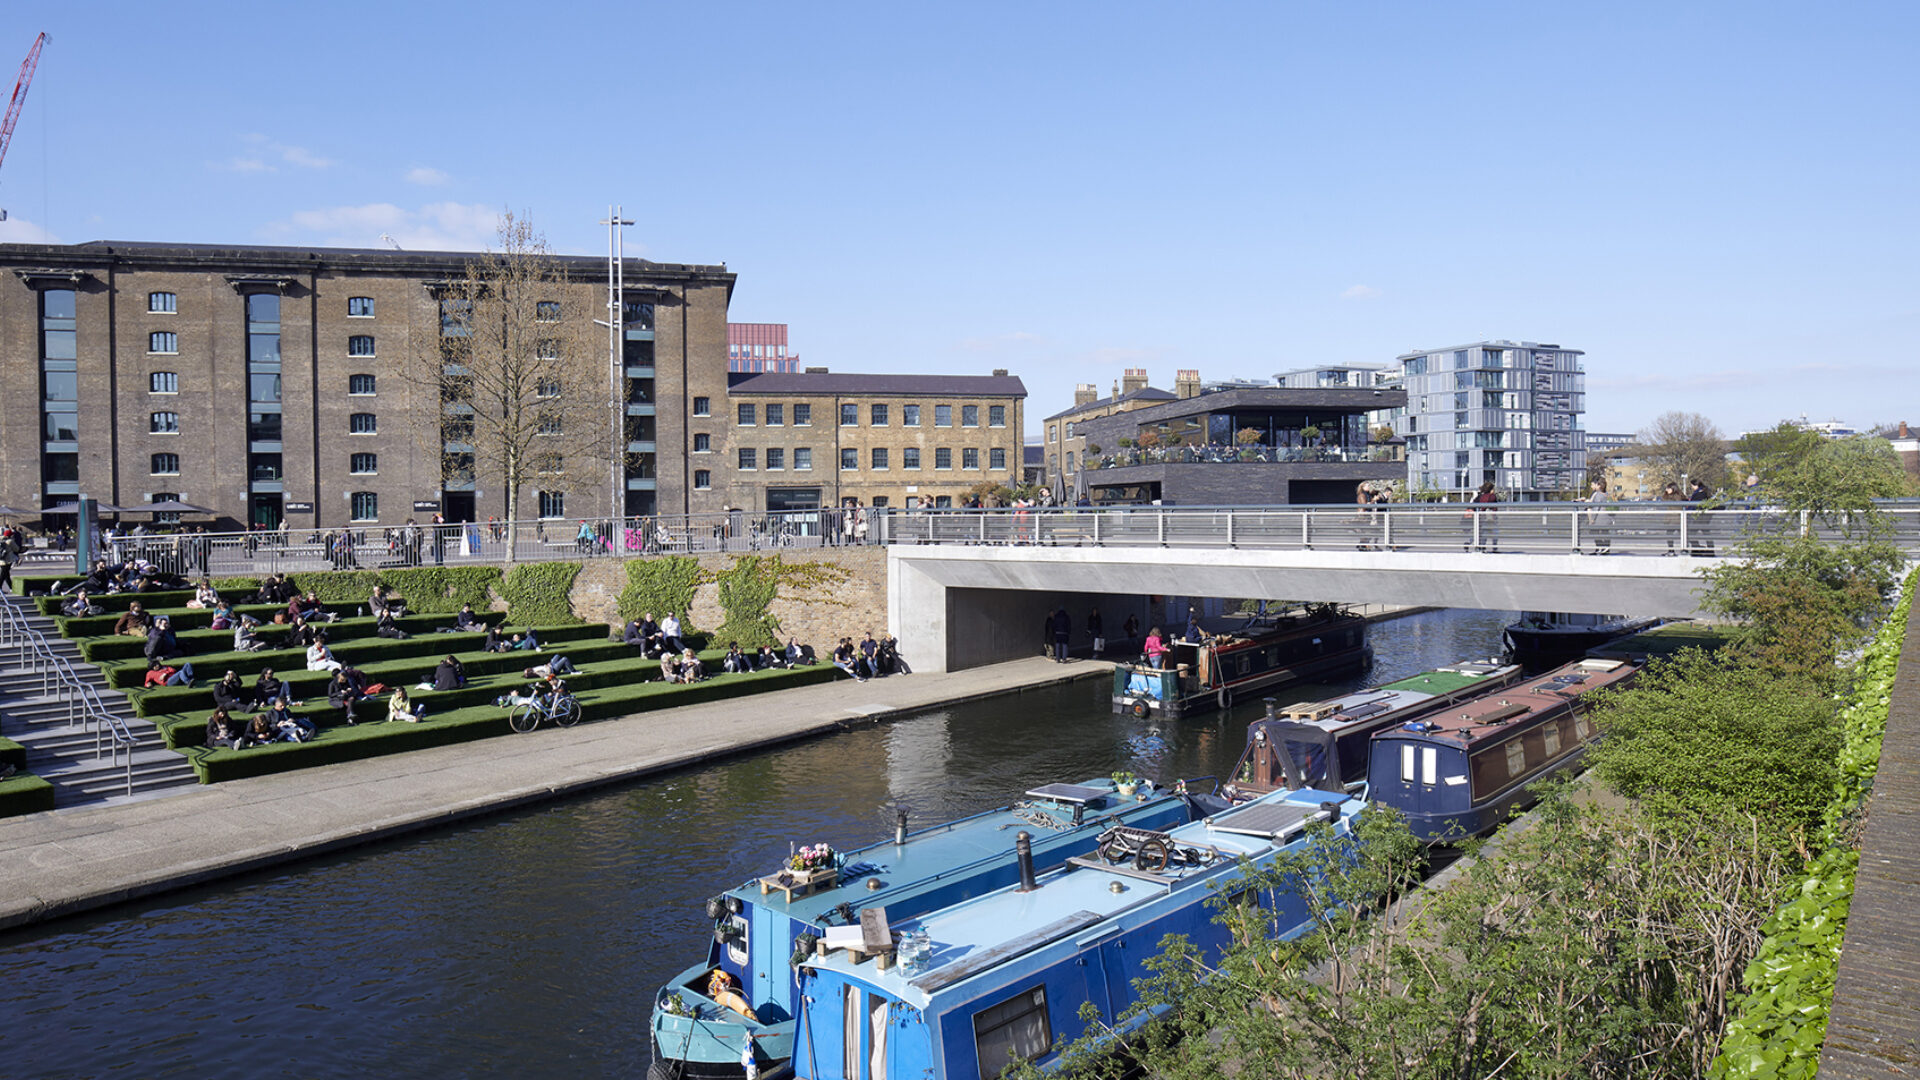 Grass steps and canal boats at Regents Canal bridge, Kings Cross